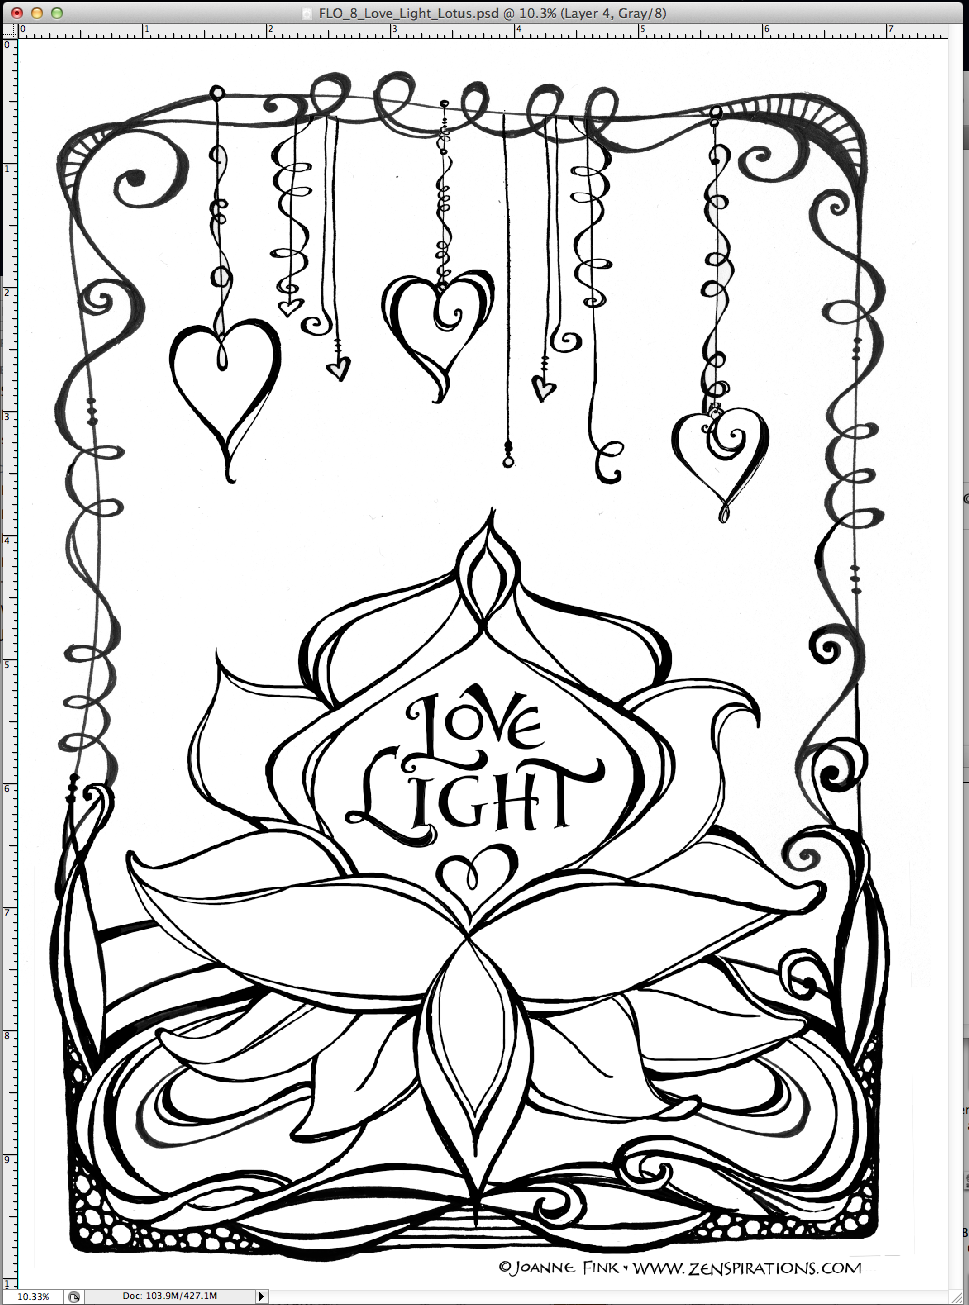 Whitman hot wheels coloring book - This Zenspirations Dangle Design Is From A Page Of My New Zenspirations Flower Coloring Book